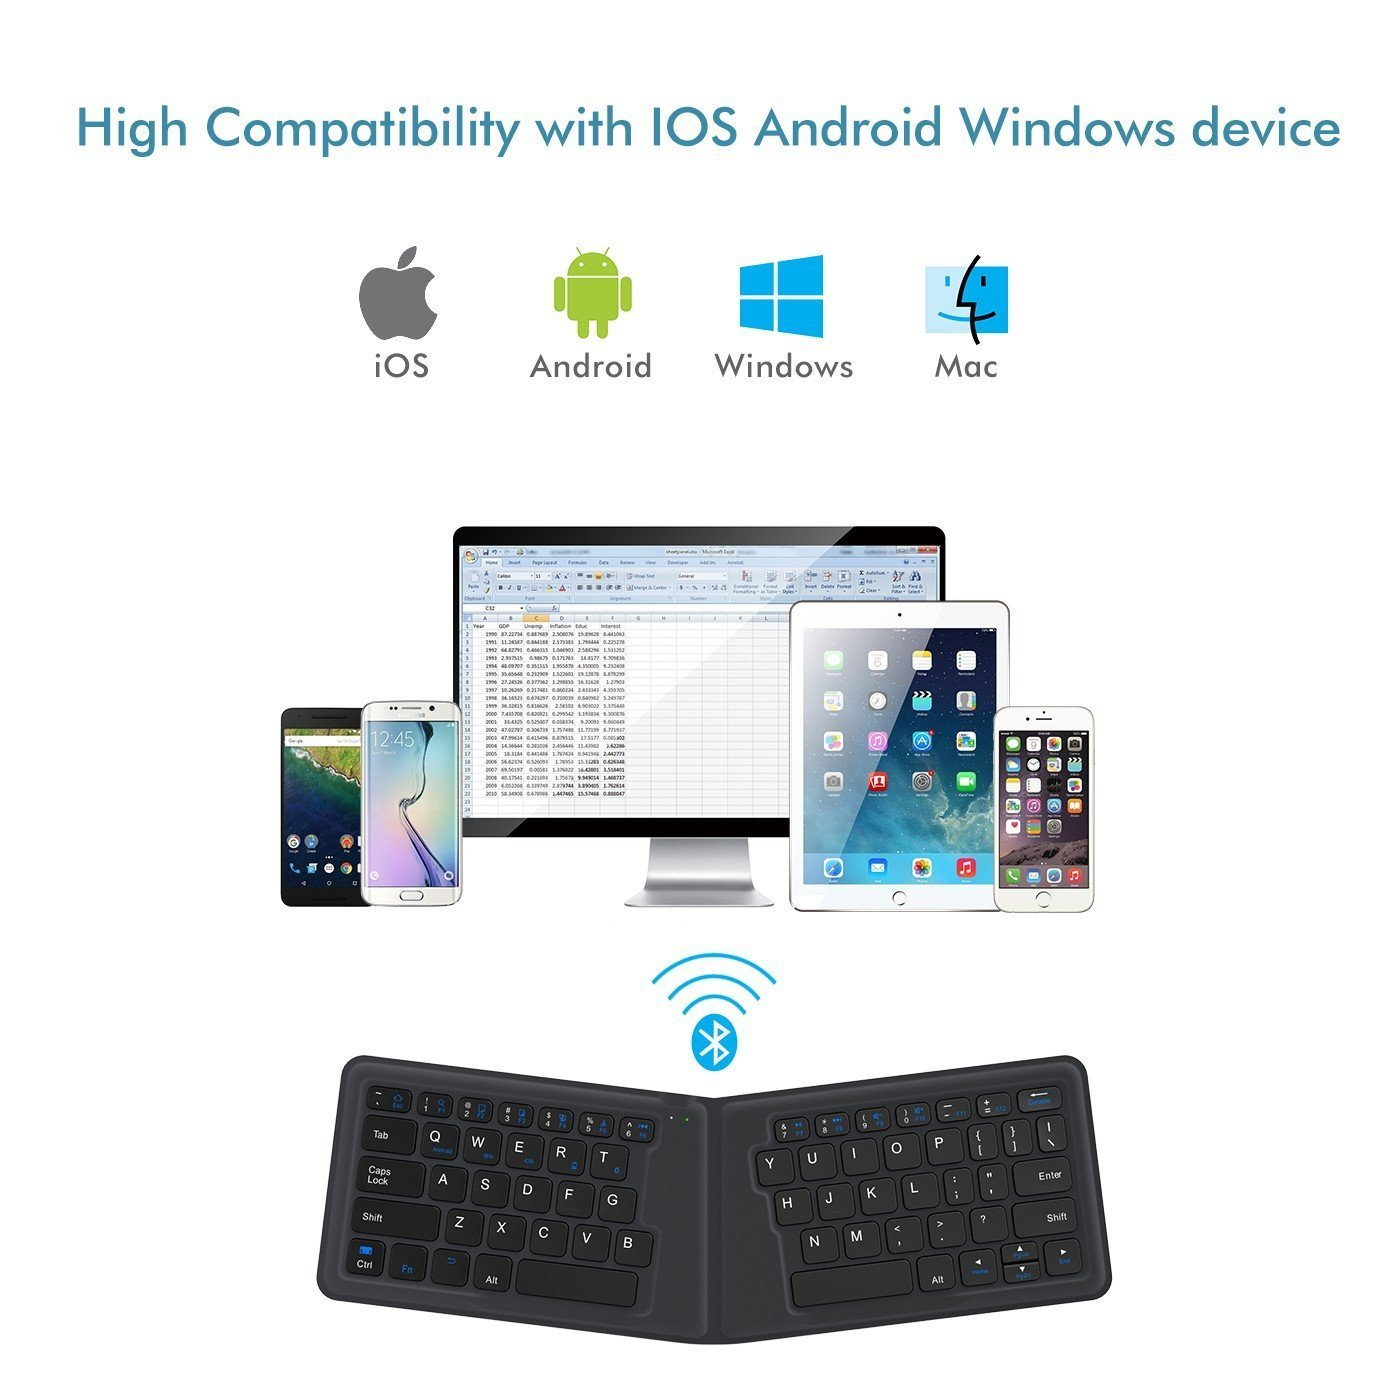 iClever Wireless Folding Designed, Ultra Slim Rechargeable Bluetooth Keyboard for Windows iOS Mac Android Tablets Smartphones, Gray (IC-BK06) by iClever (Image #3)